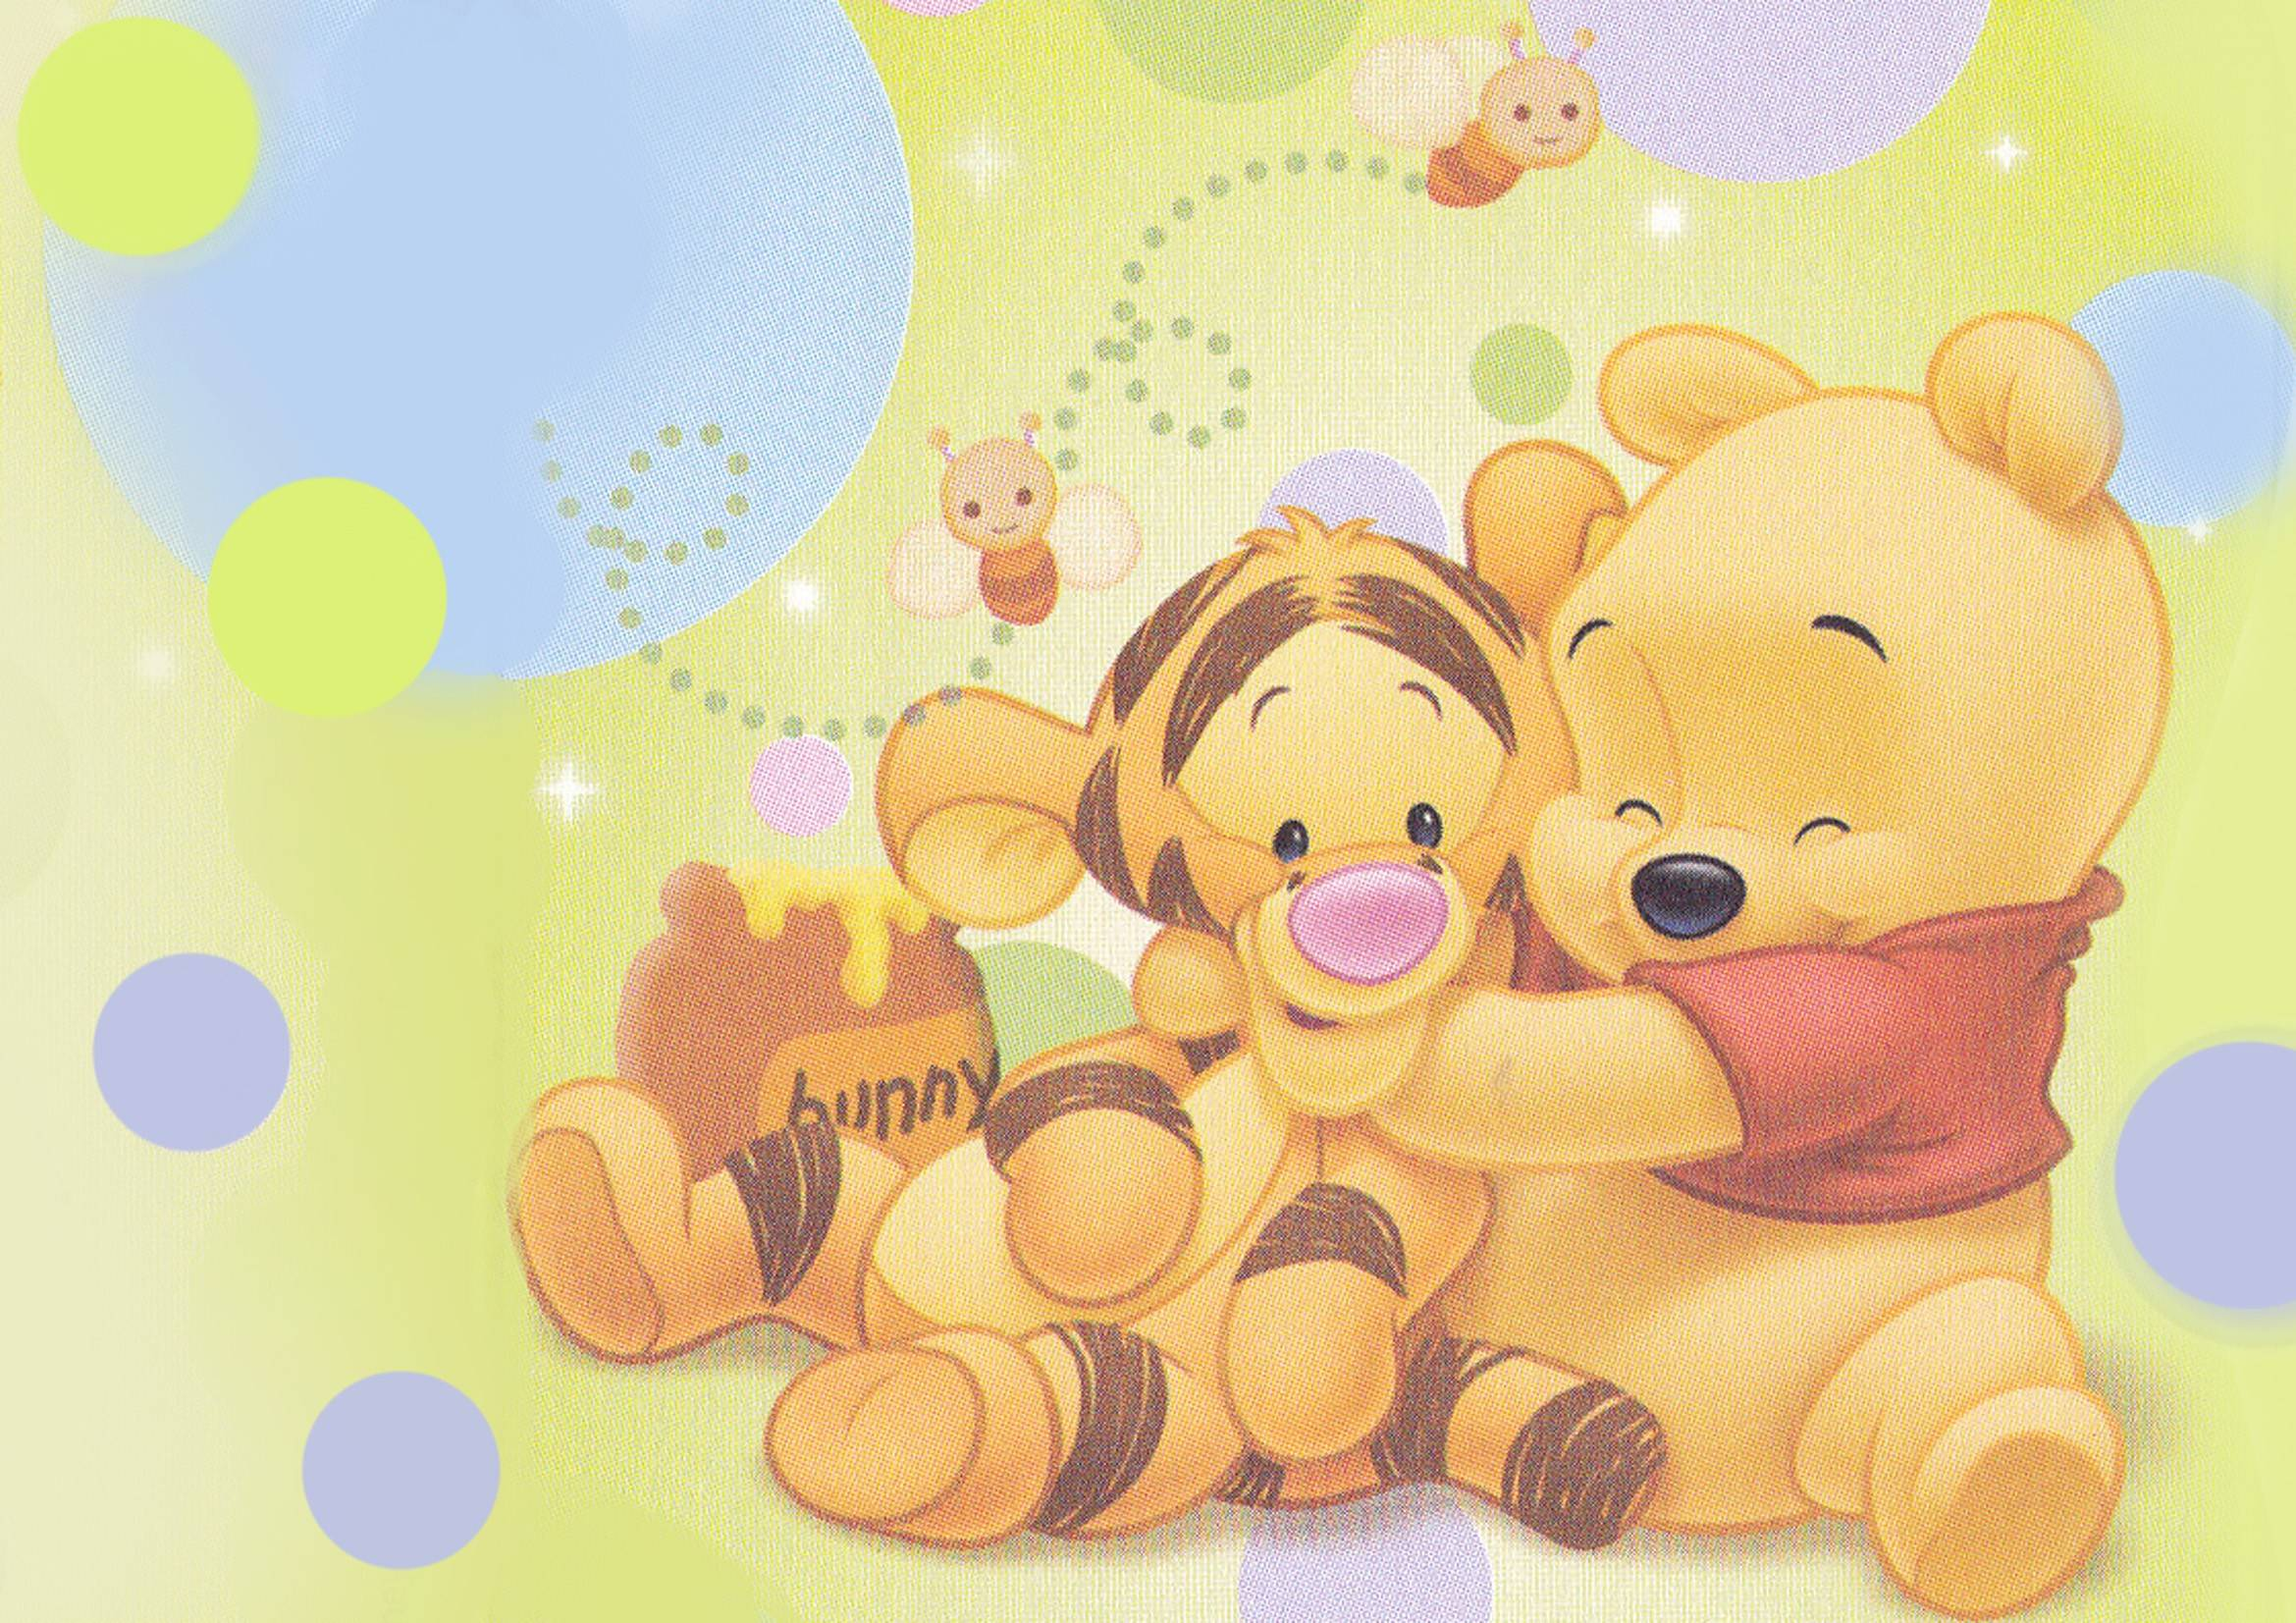 Pooh bear wallpapers wallpaper cave pooh bear wallpaper ahd images voltagebd Image collections